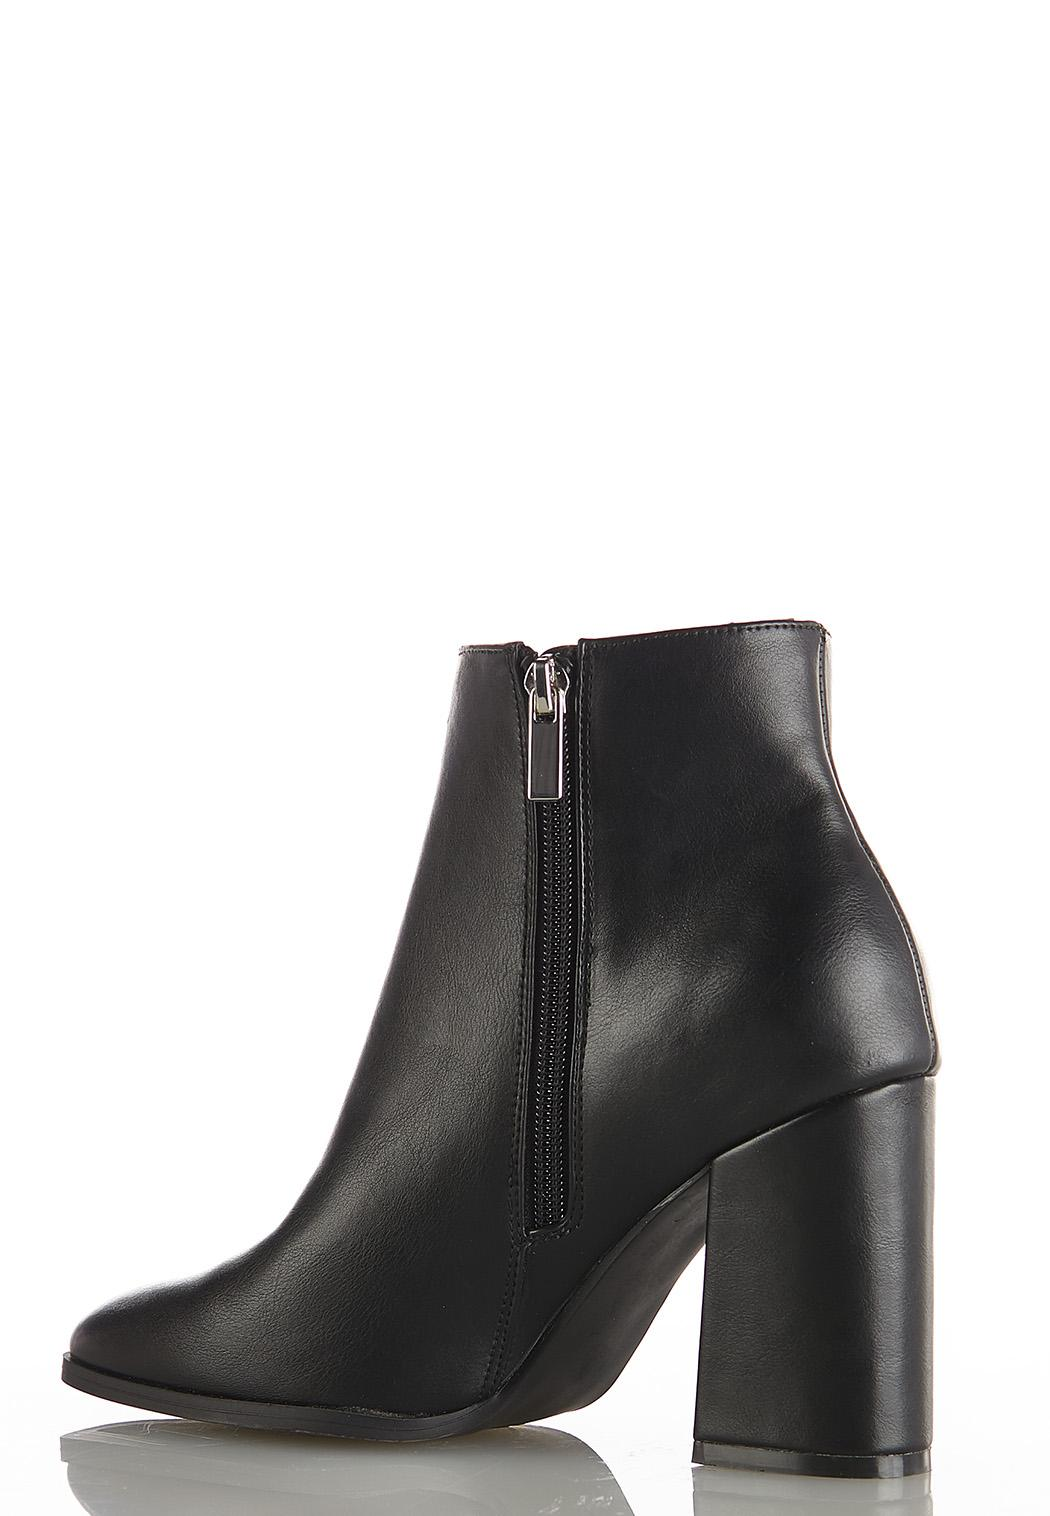 Flare Heel Ankle Boots (Item #44118108)